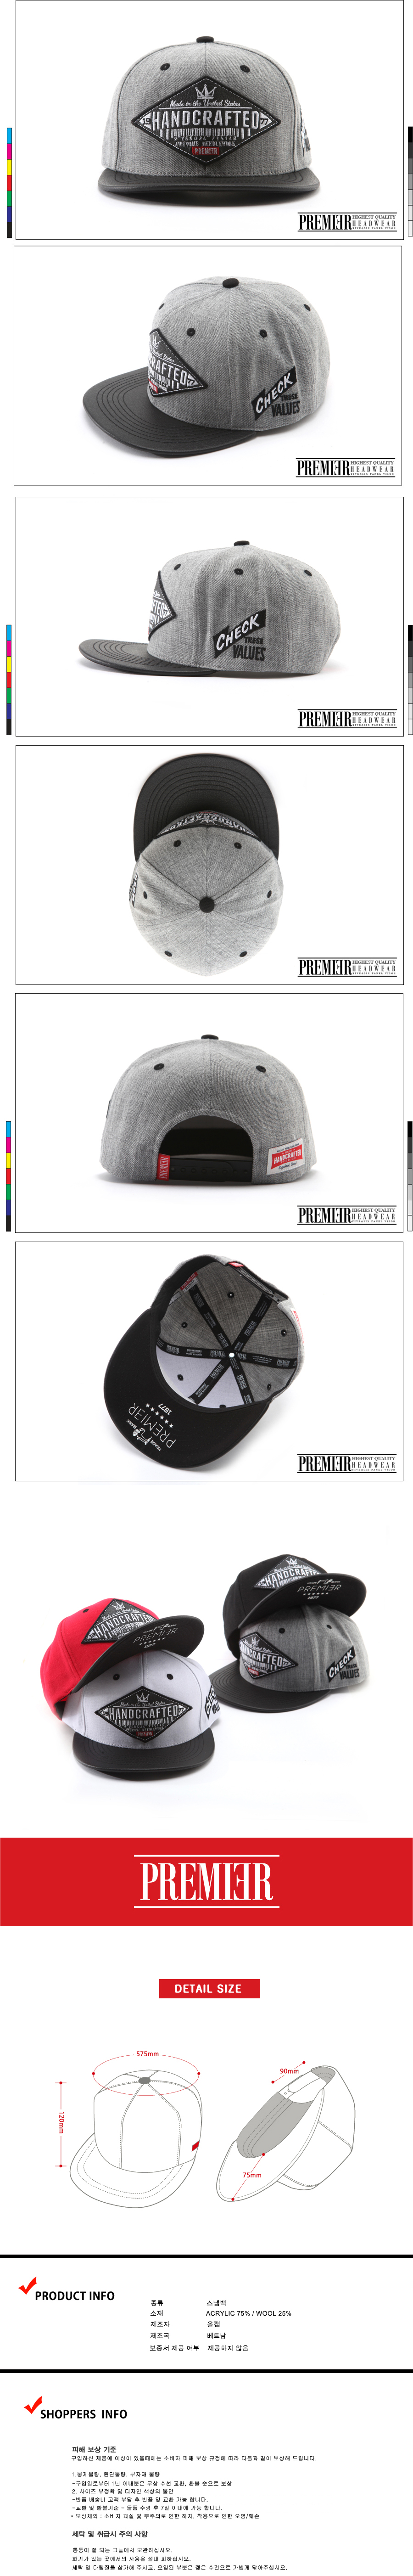 [ PREMIER ] [Premier] Diamond Patch AW Grey/Black